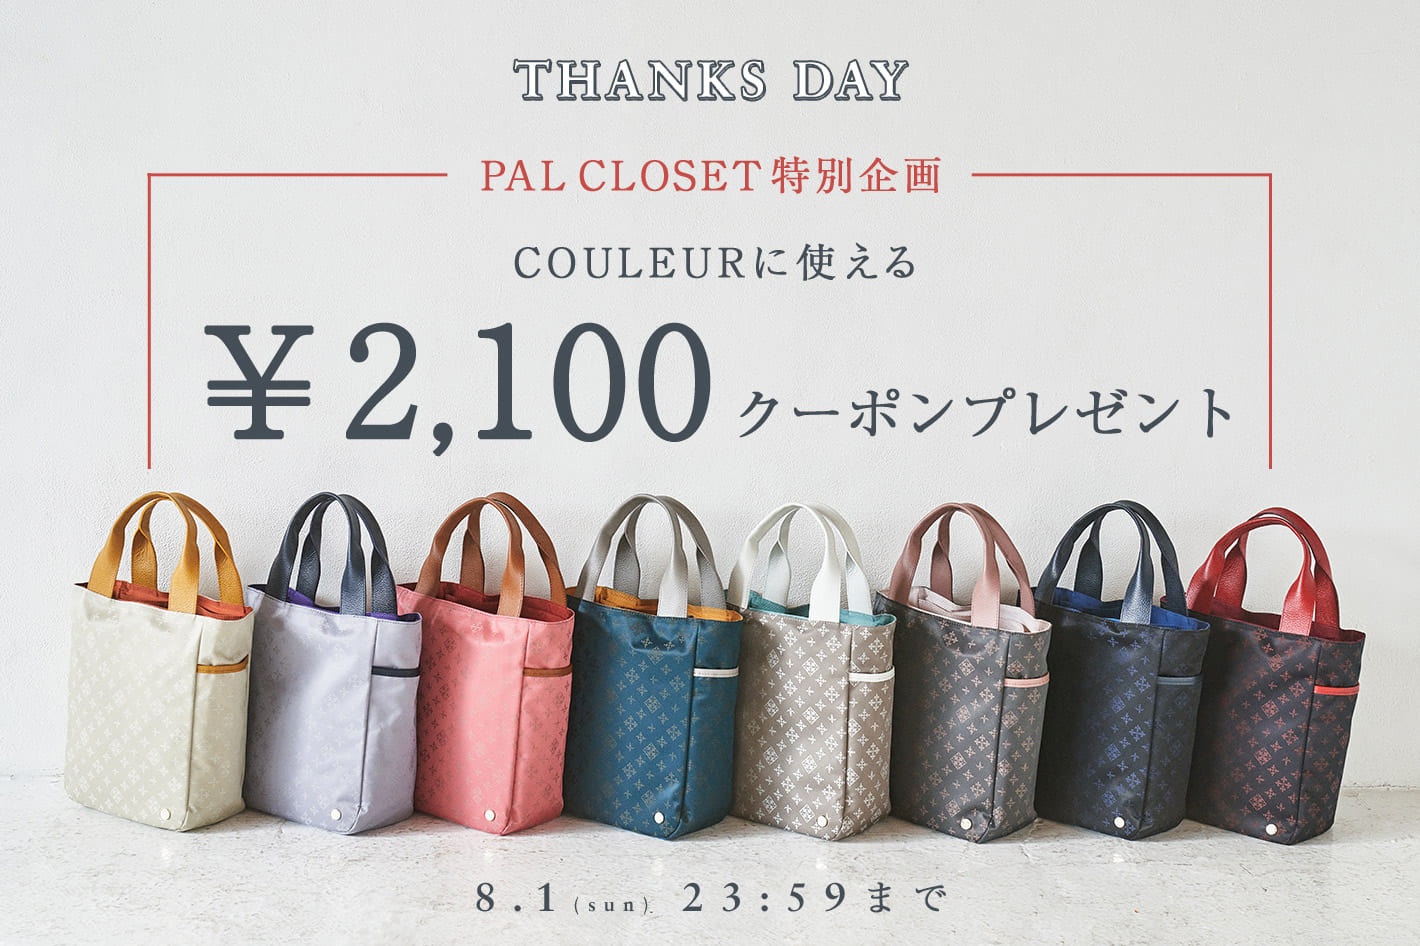 """russet \THANKS DAY/PAL CLOSET特別企画 21周年記念バッグ""""COULEUR""""に使える¥2,100クーポンプレゼント"""